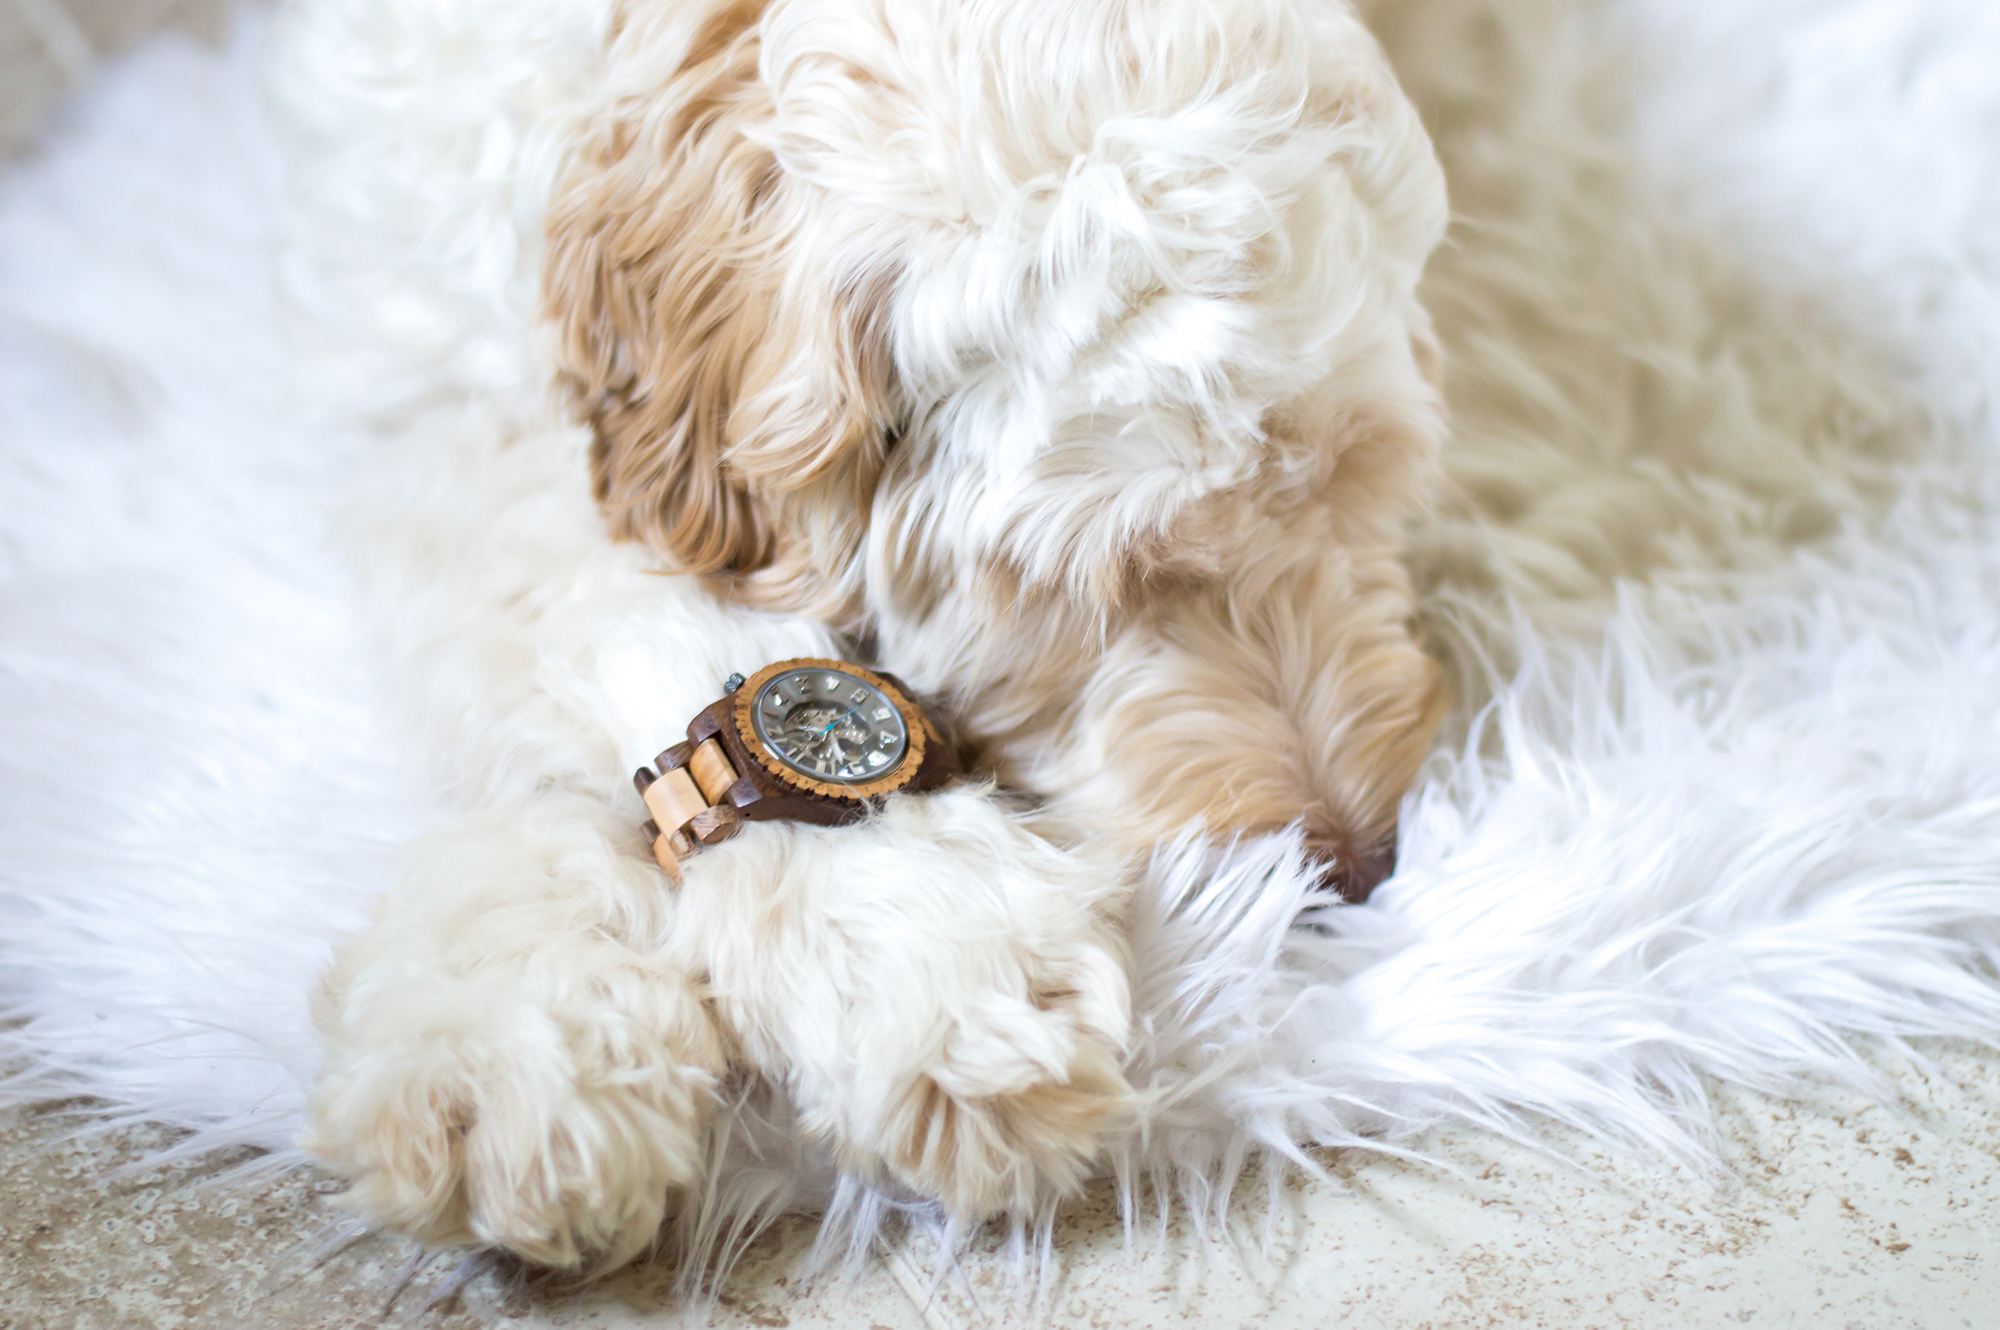 styelled-elle-elisabeth-fashion-style-blogger-jord-wood-watches-luxury-watch-dover-series-valentines-day-for-him-ootd-australian-labradoodle-07